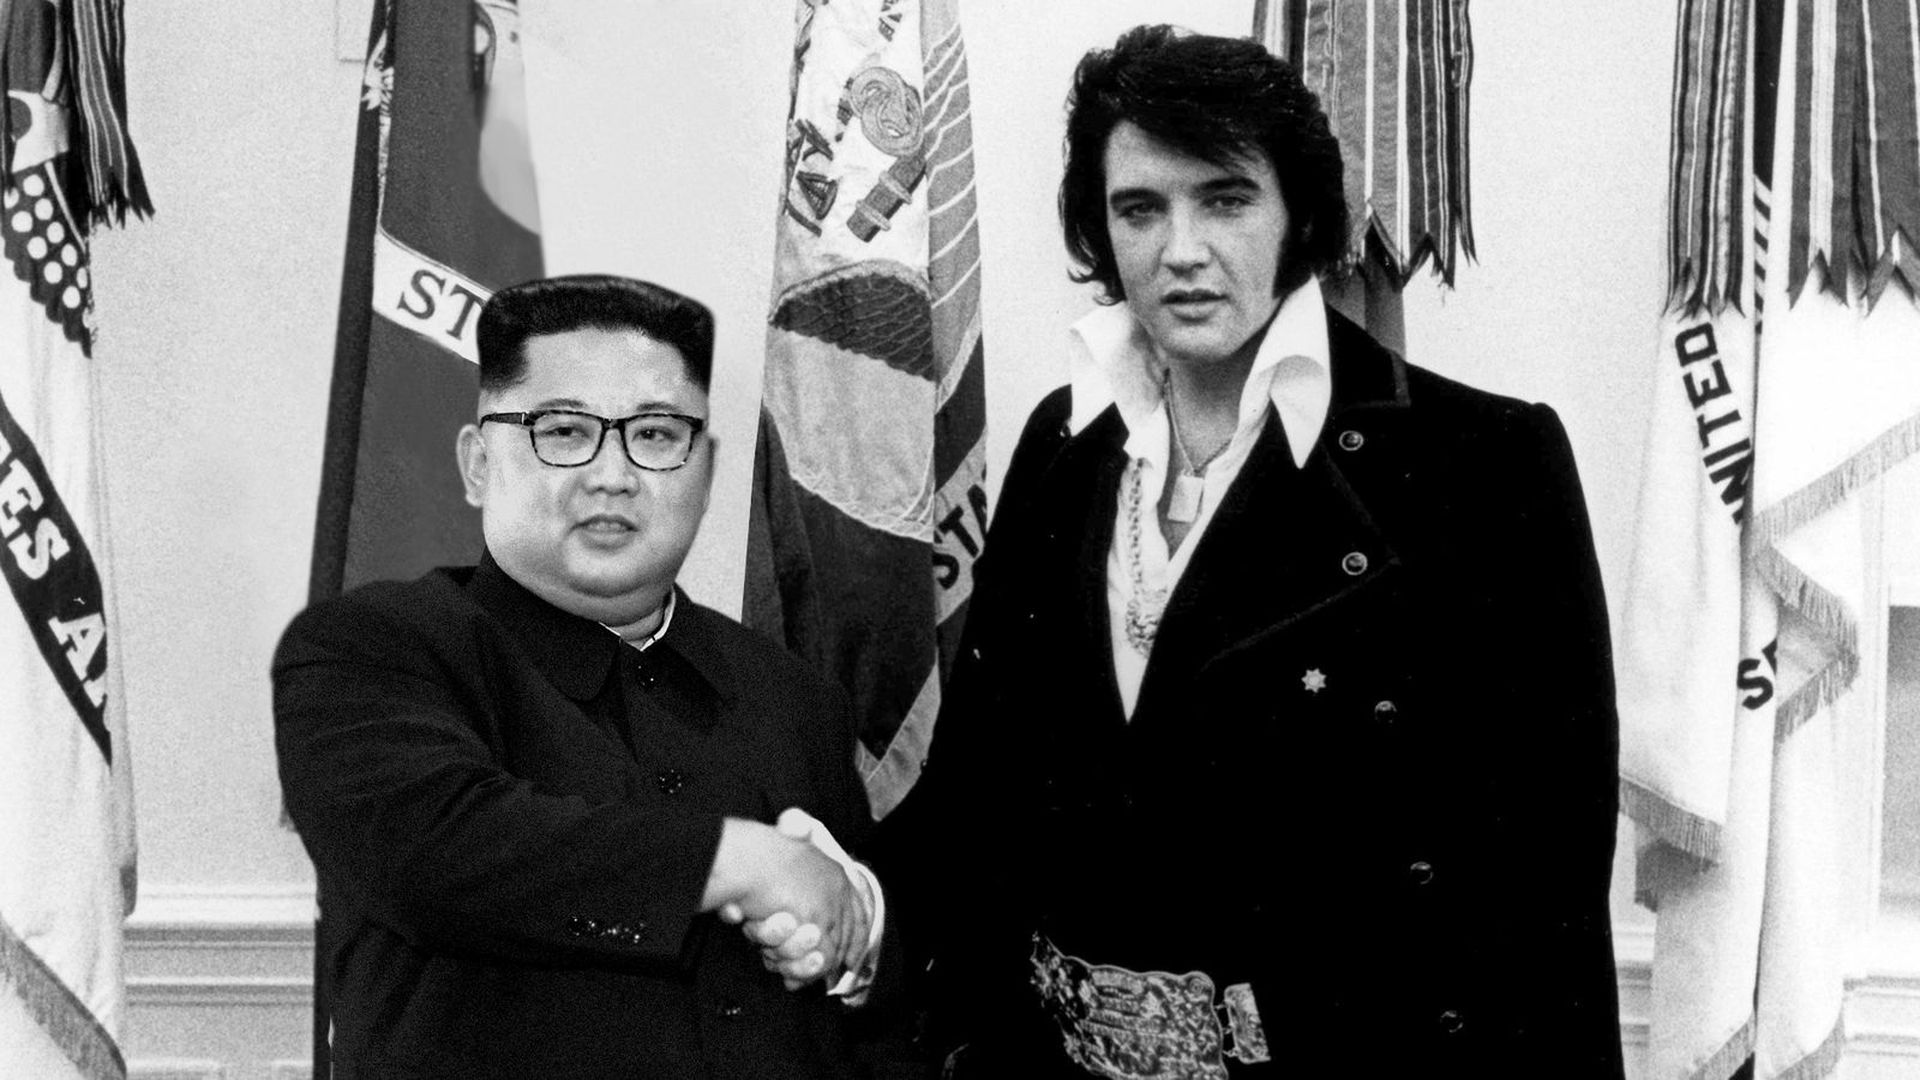 Photoshopped image of Elvis shaking hands with Kim Jong-Un